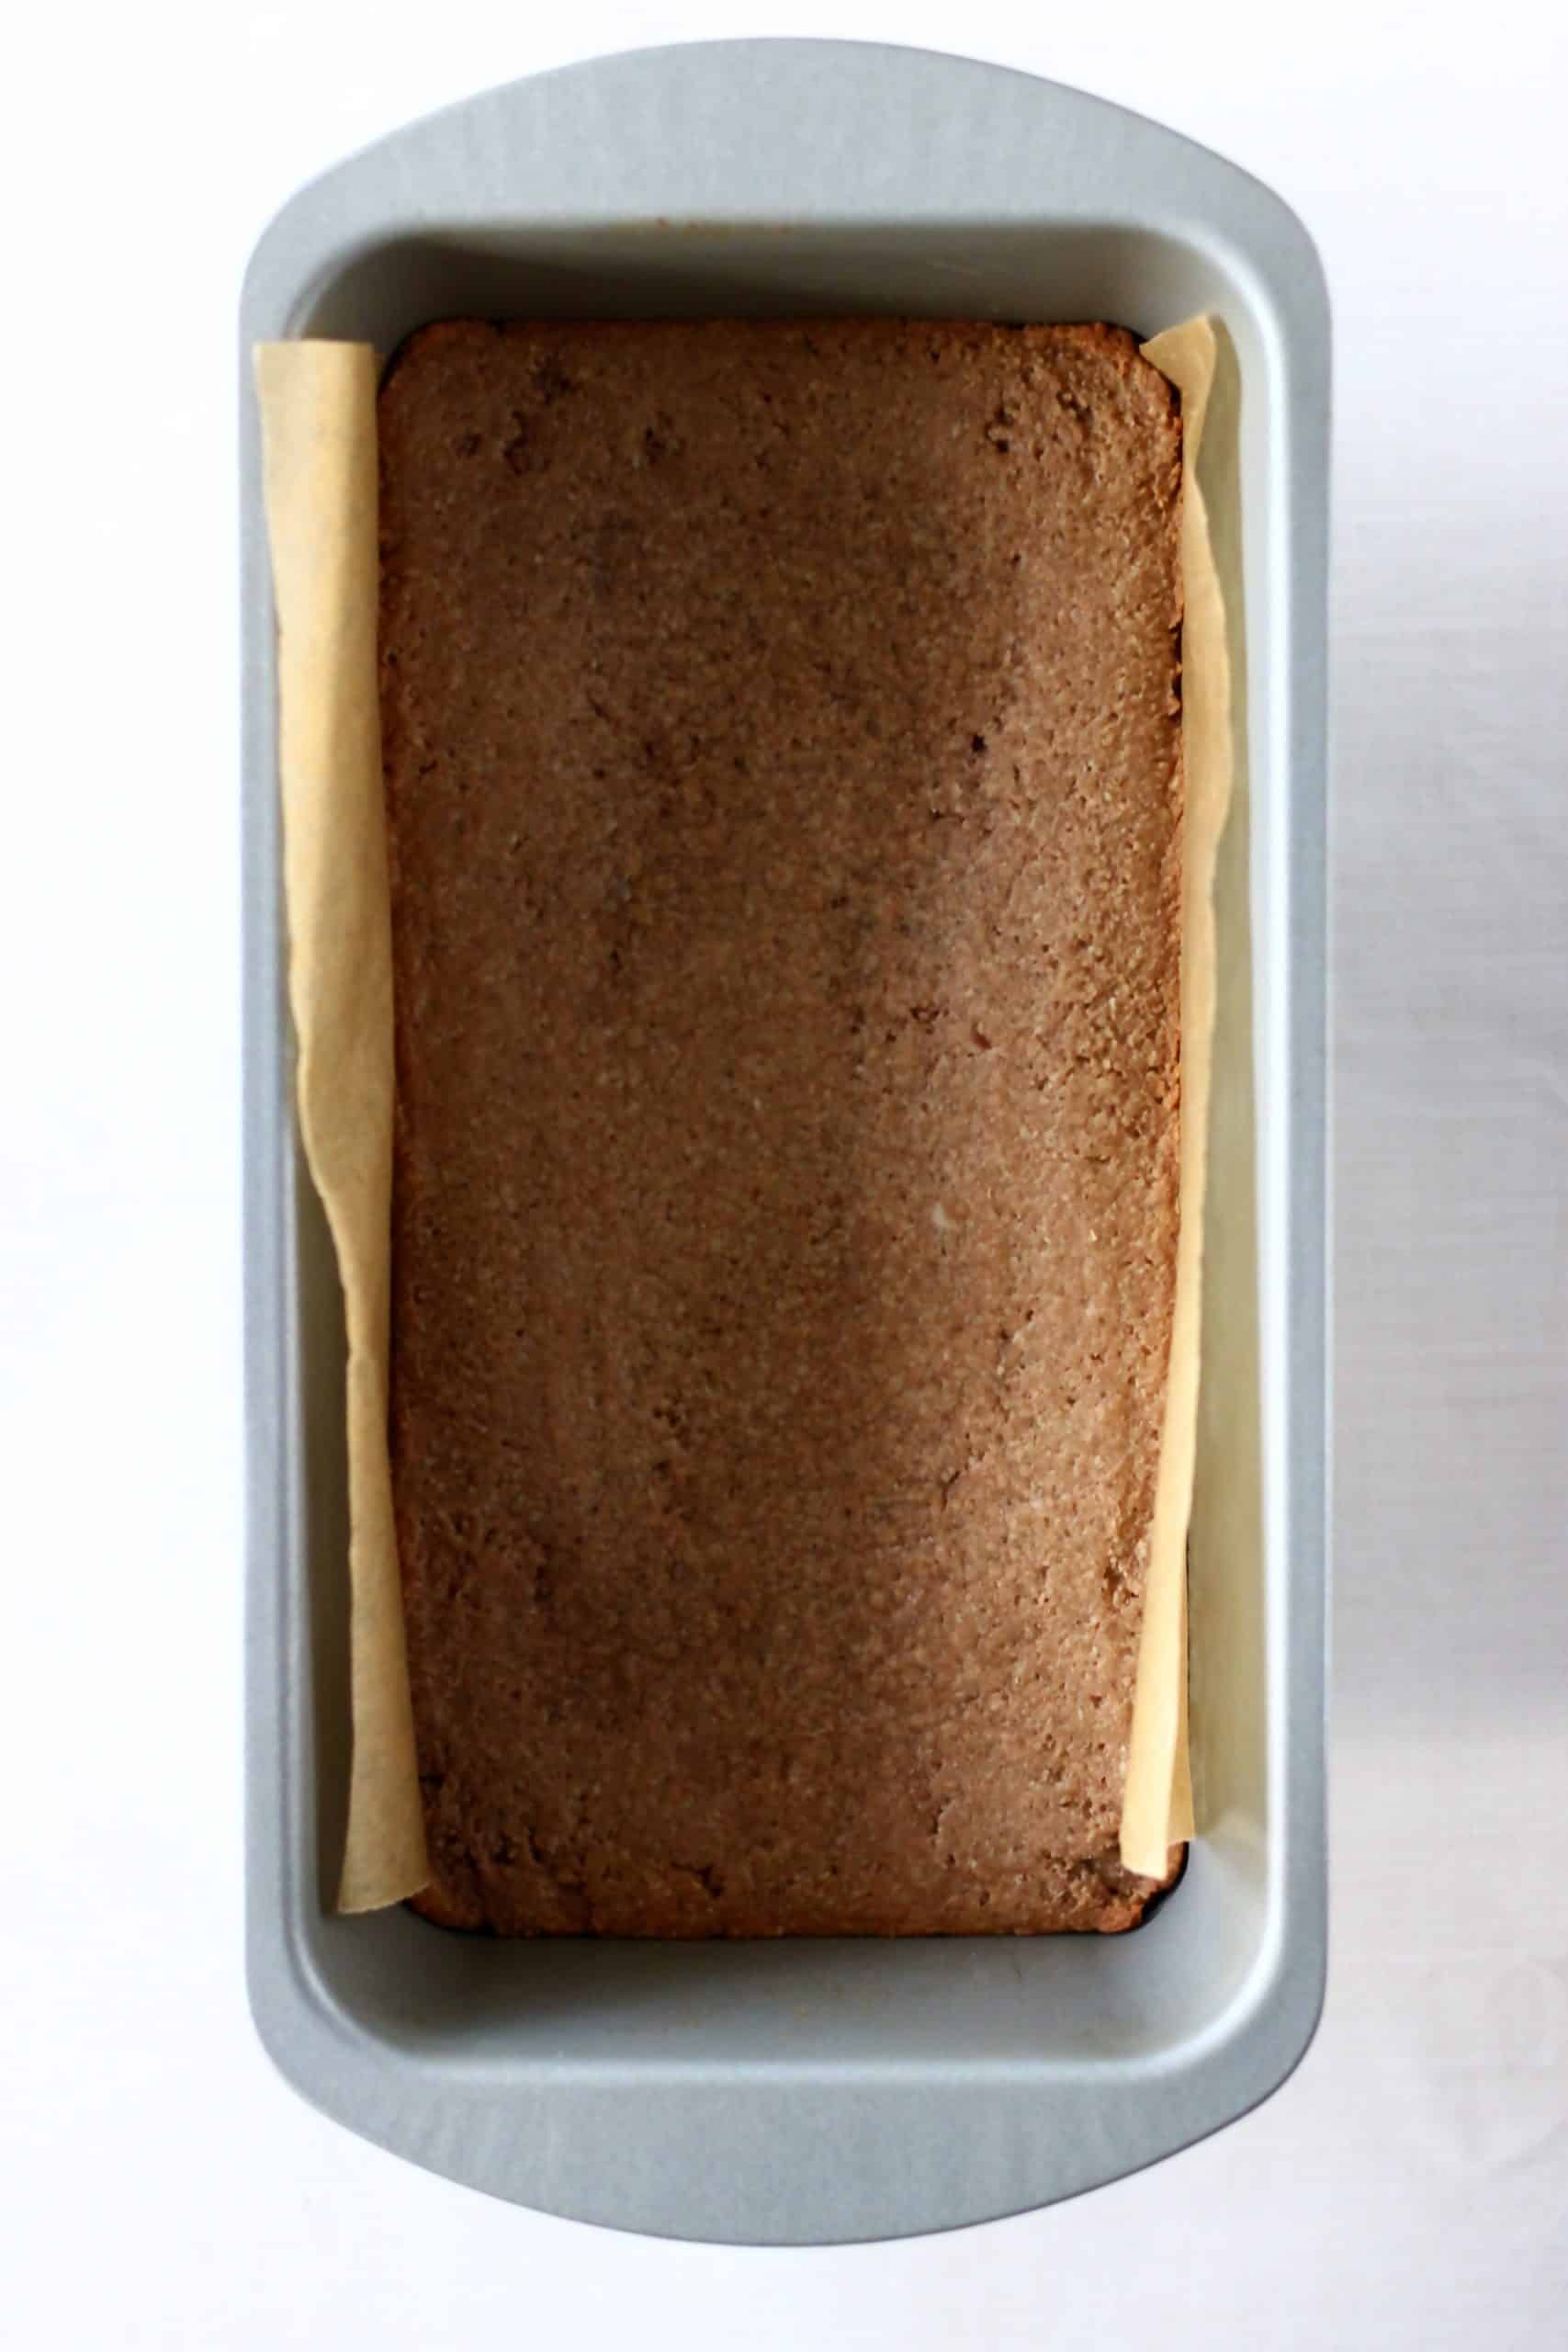 Baked gluten-free vegan gingerbread cookie bars in a loaf tin lined with baking paper